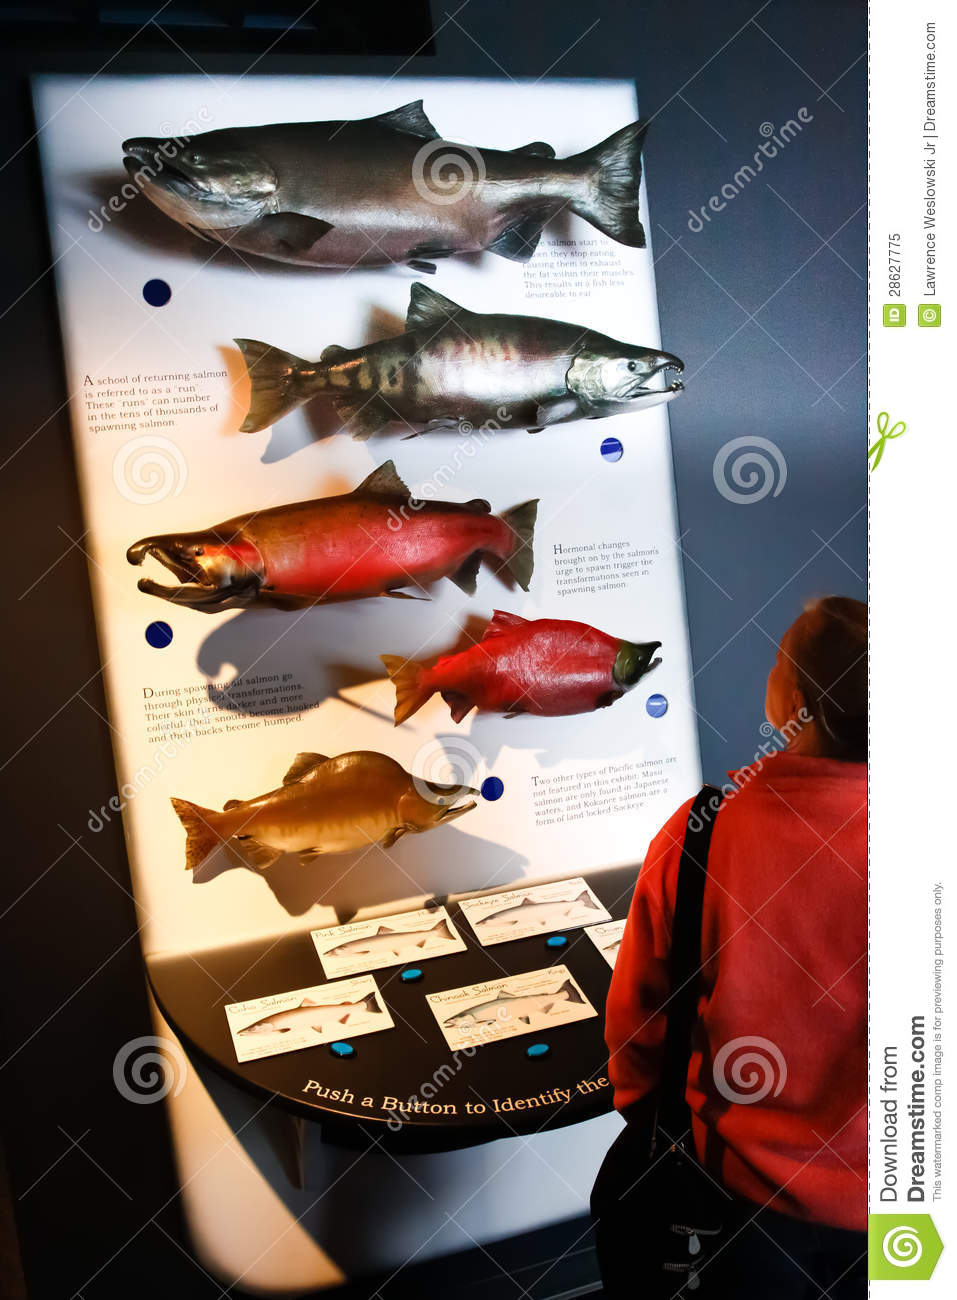 Alaska Sea Life Center Pacific Salmon Display